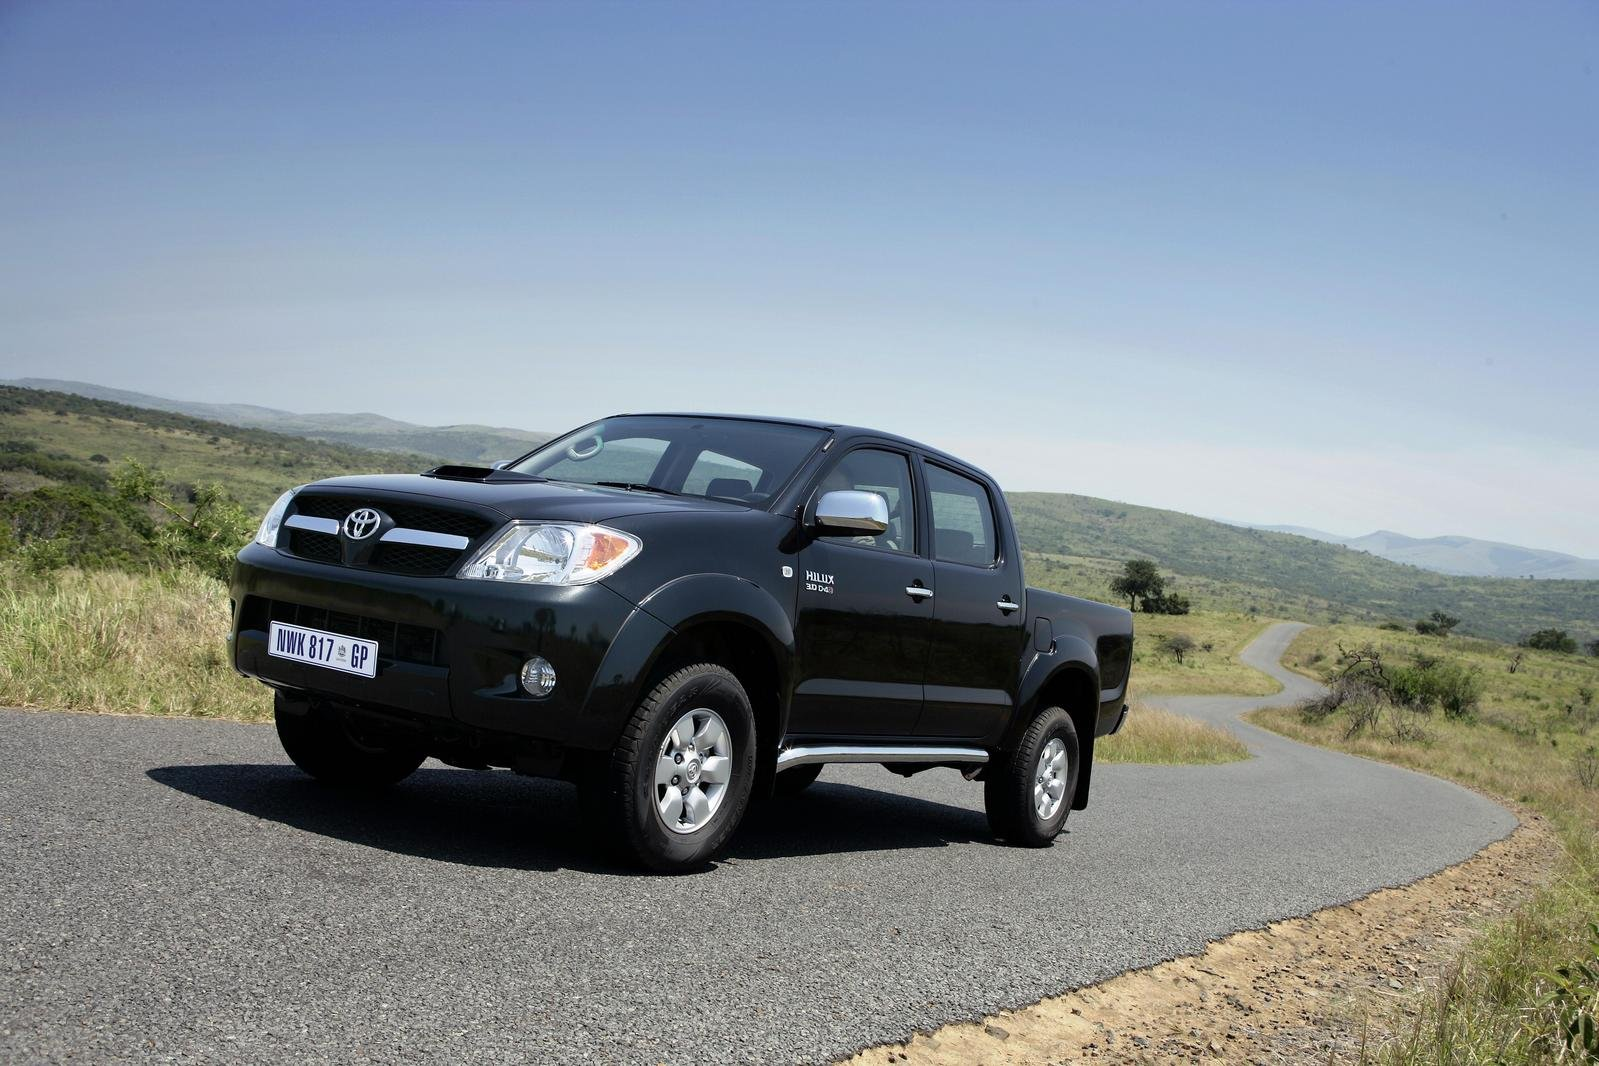 2007 toyota hilux picture 158001 car review top speed. Black Bedroom Furniture Sets. Home Design Ideas